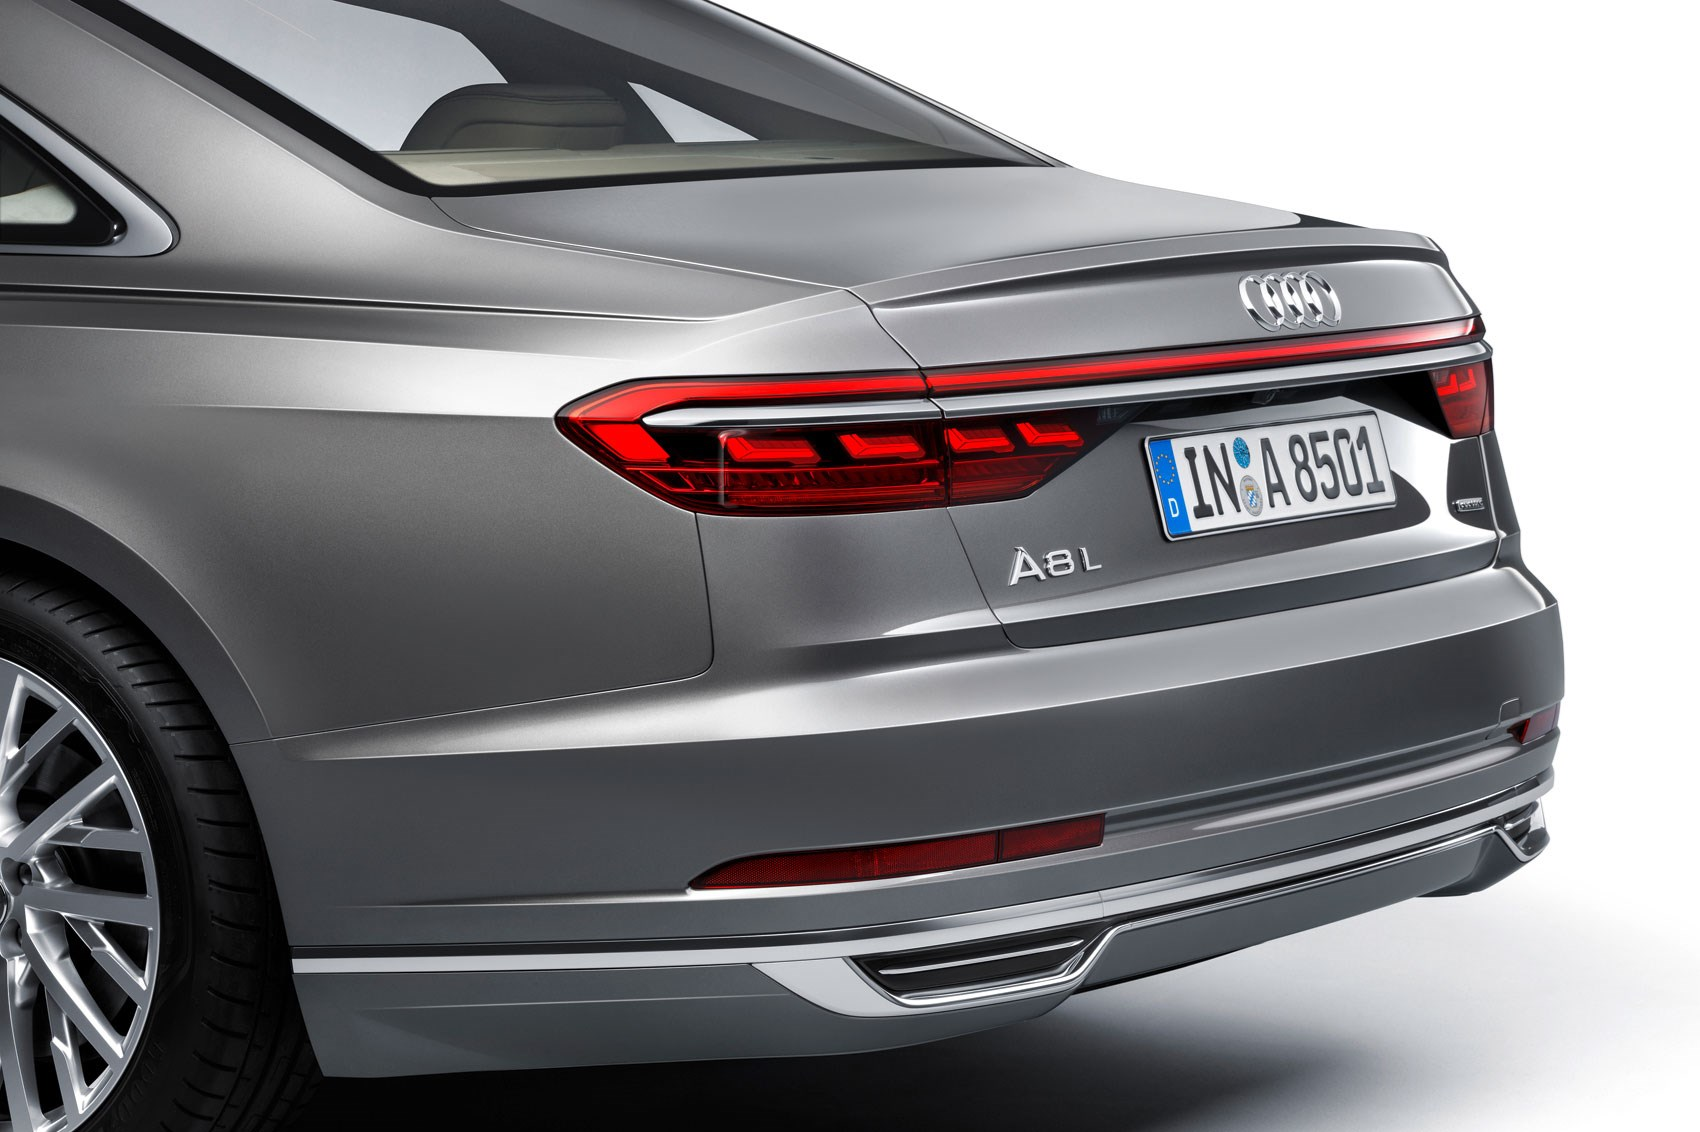 Audi A8 Information: Everything You Need To Know If You Own It, Are  Thinking Of Buying One Or Just Want To Find Out More About Audiu0027s Luxury  Saloon.